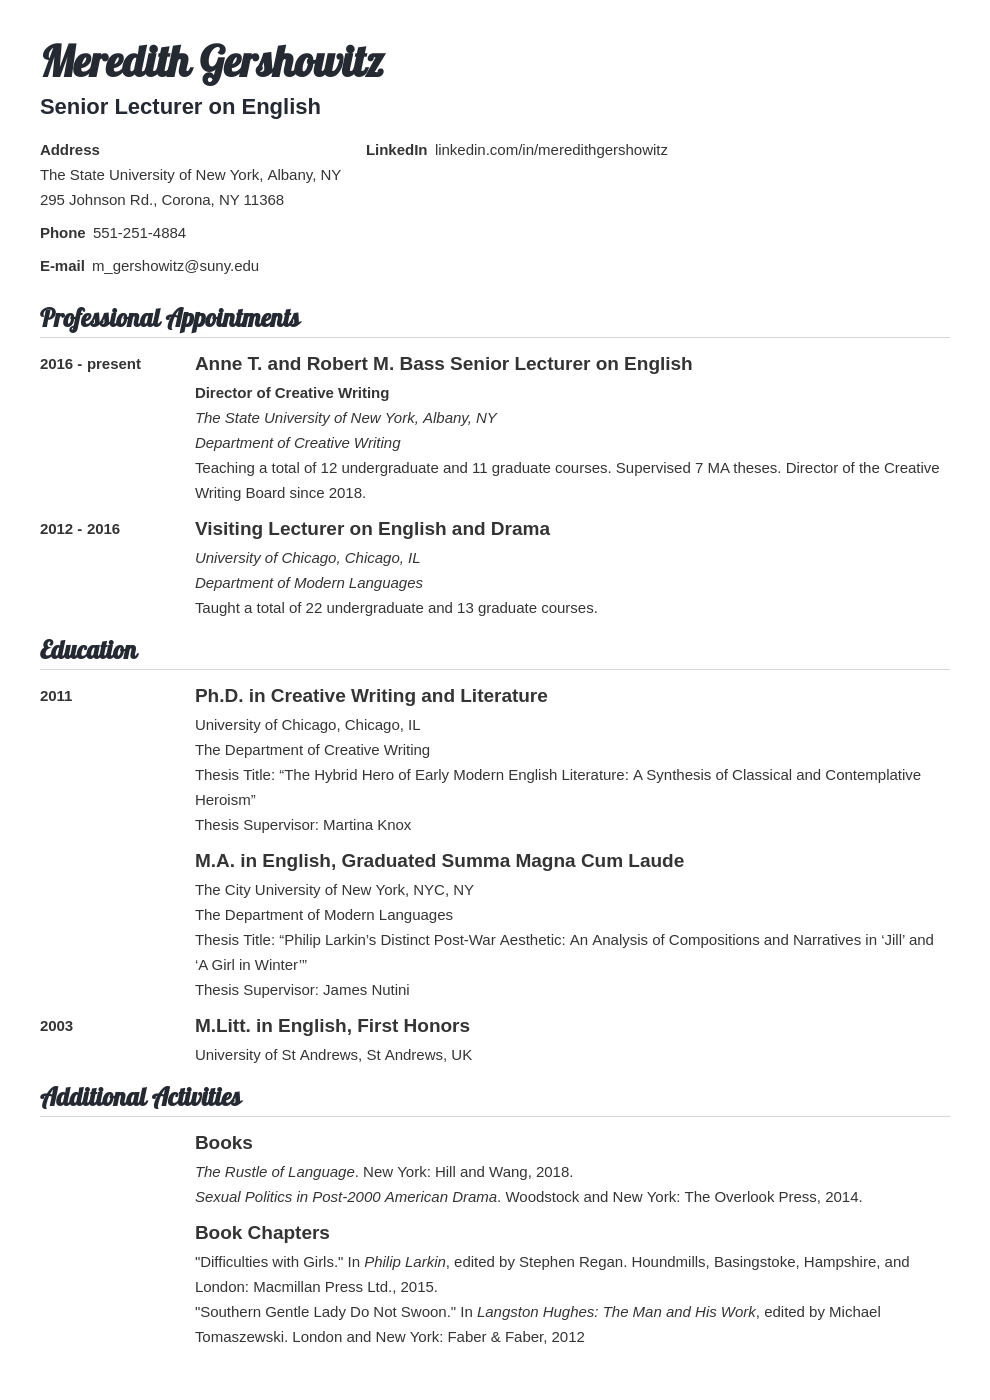 cv academic template valera